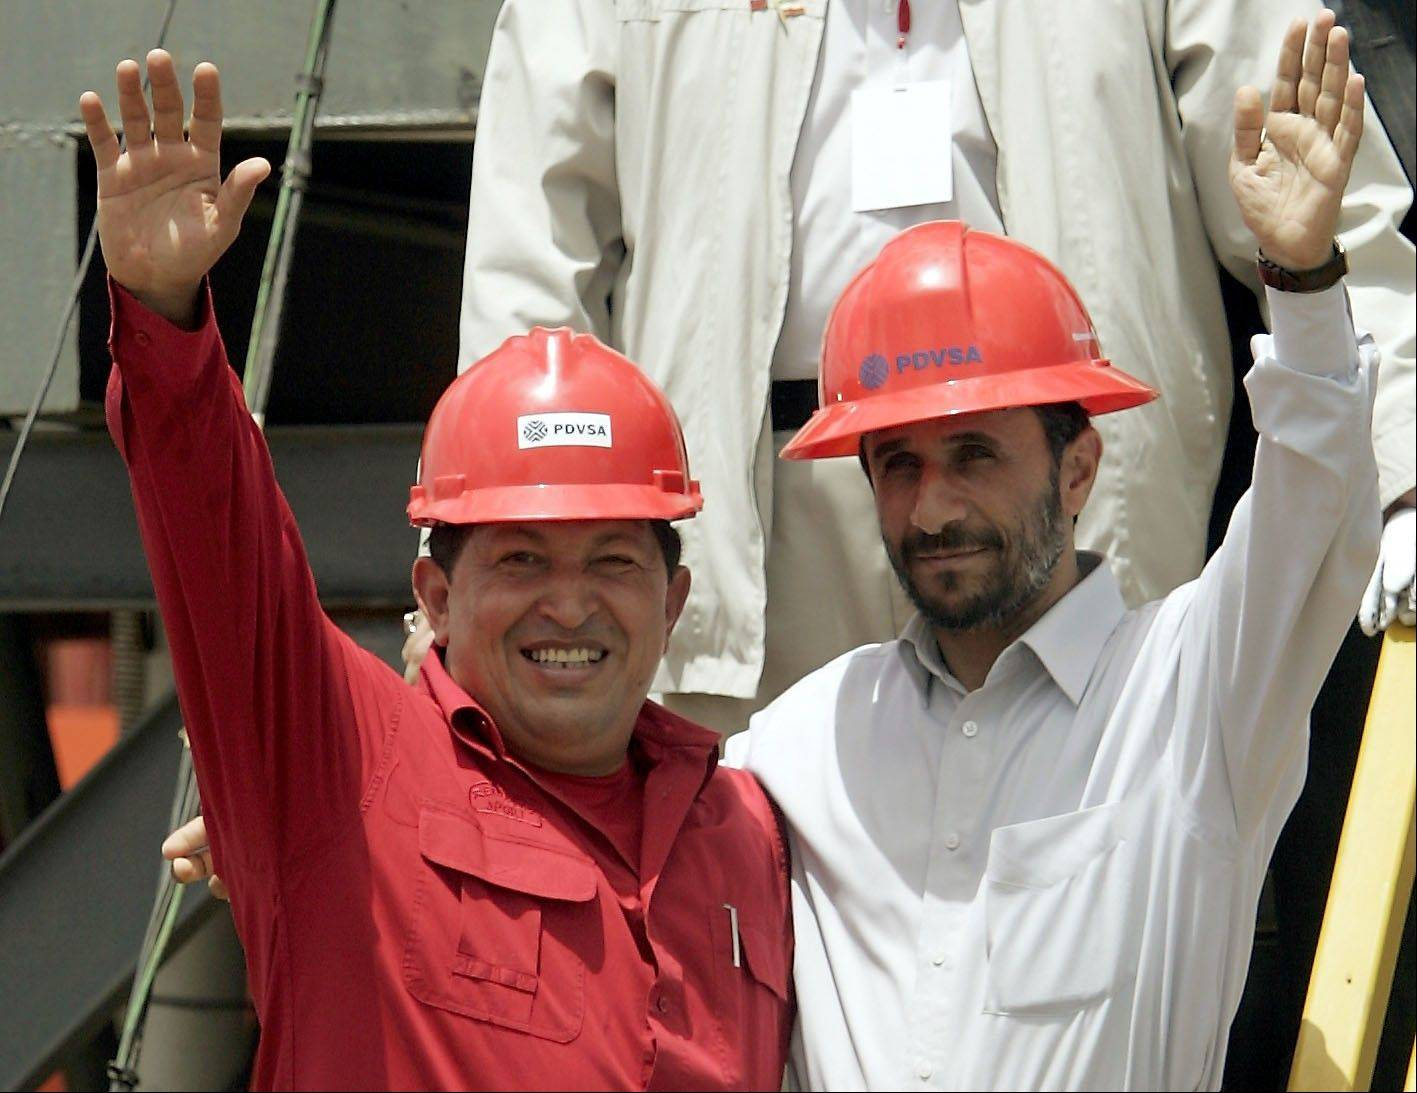 Venezuela's President Hugo Chavez, left, and Iran's President Mahmoud Ahmadinejad wave to the press after inaugurating an oil drill in San Tome, Venezuela, in 2006. Following Tuesday's death of Chavez, Venezuela faces near-term political uncertainty that could bring further turmoil to its oil industry.